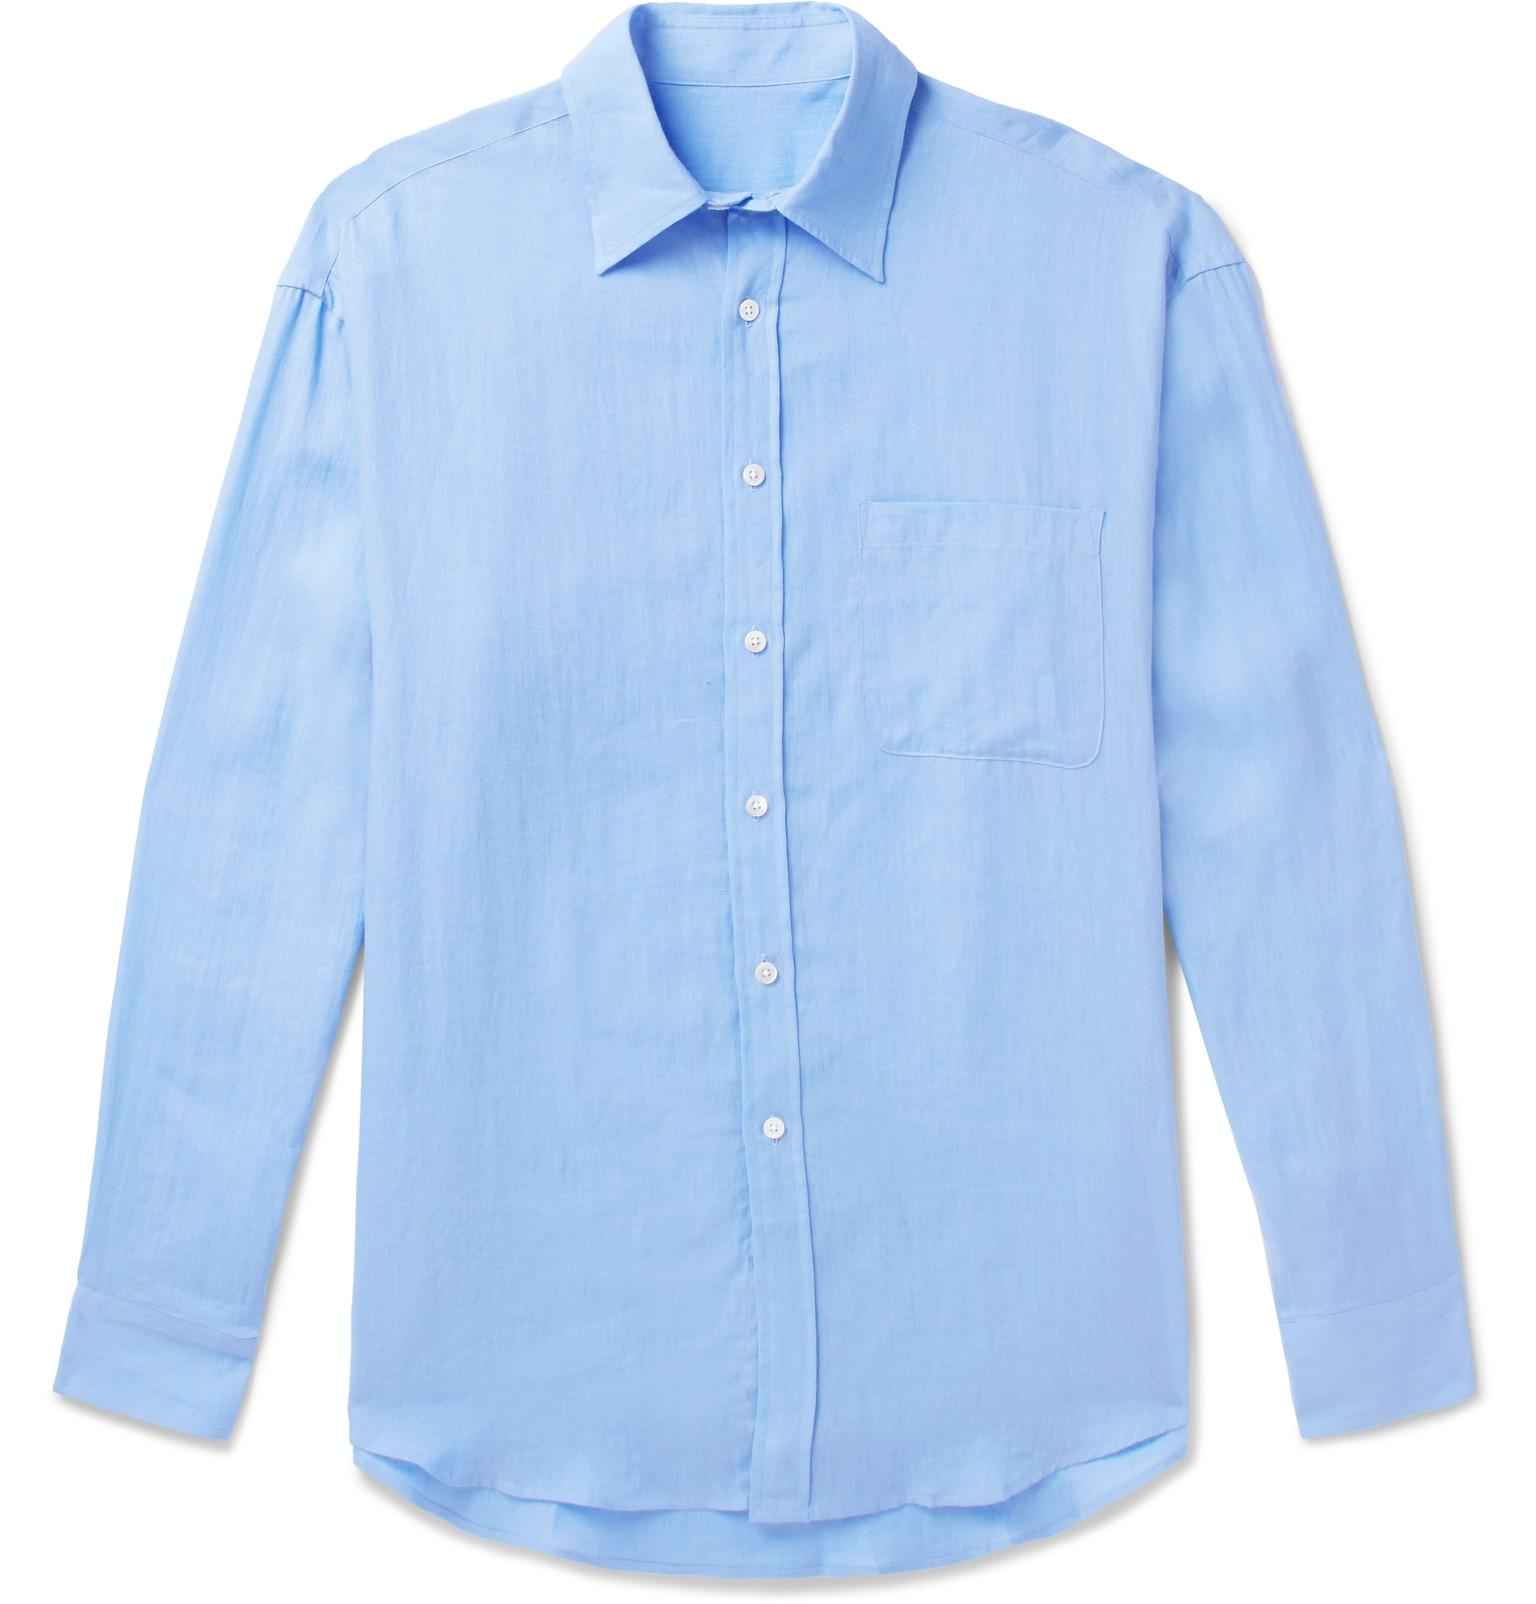 Anderson & Sheppard Linen Shirt - Blue Clearance Best Prices HKp8oM5